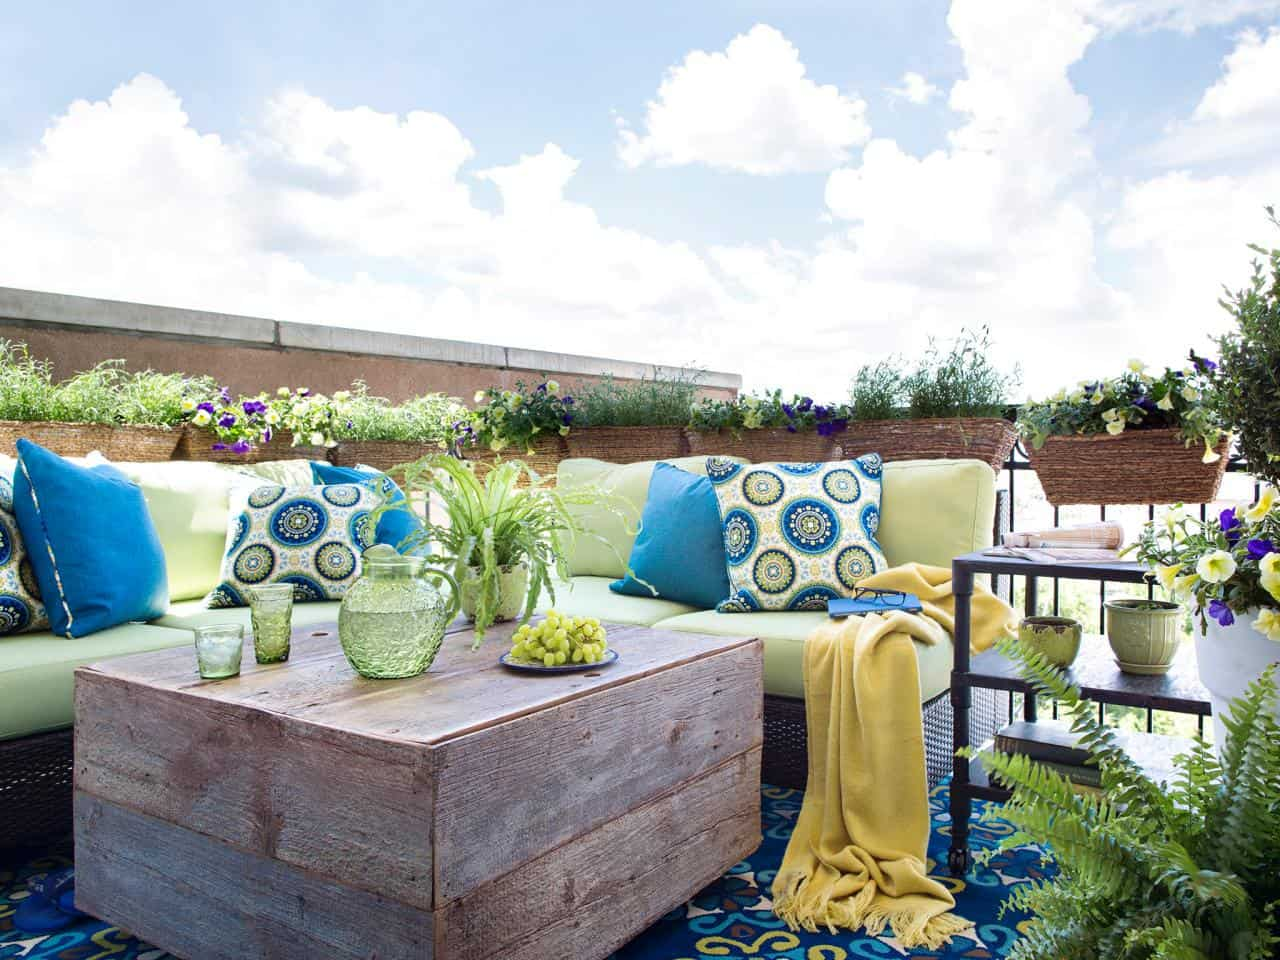 How To Make The Most Out Of A Small Patio Space